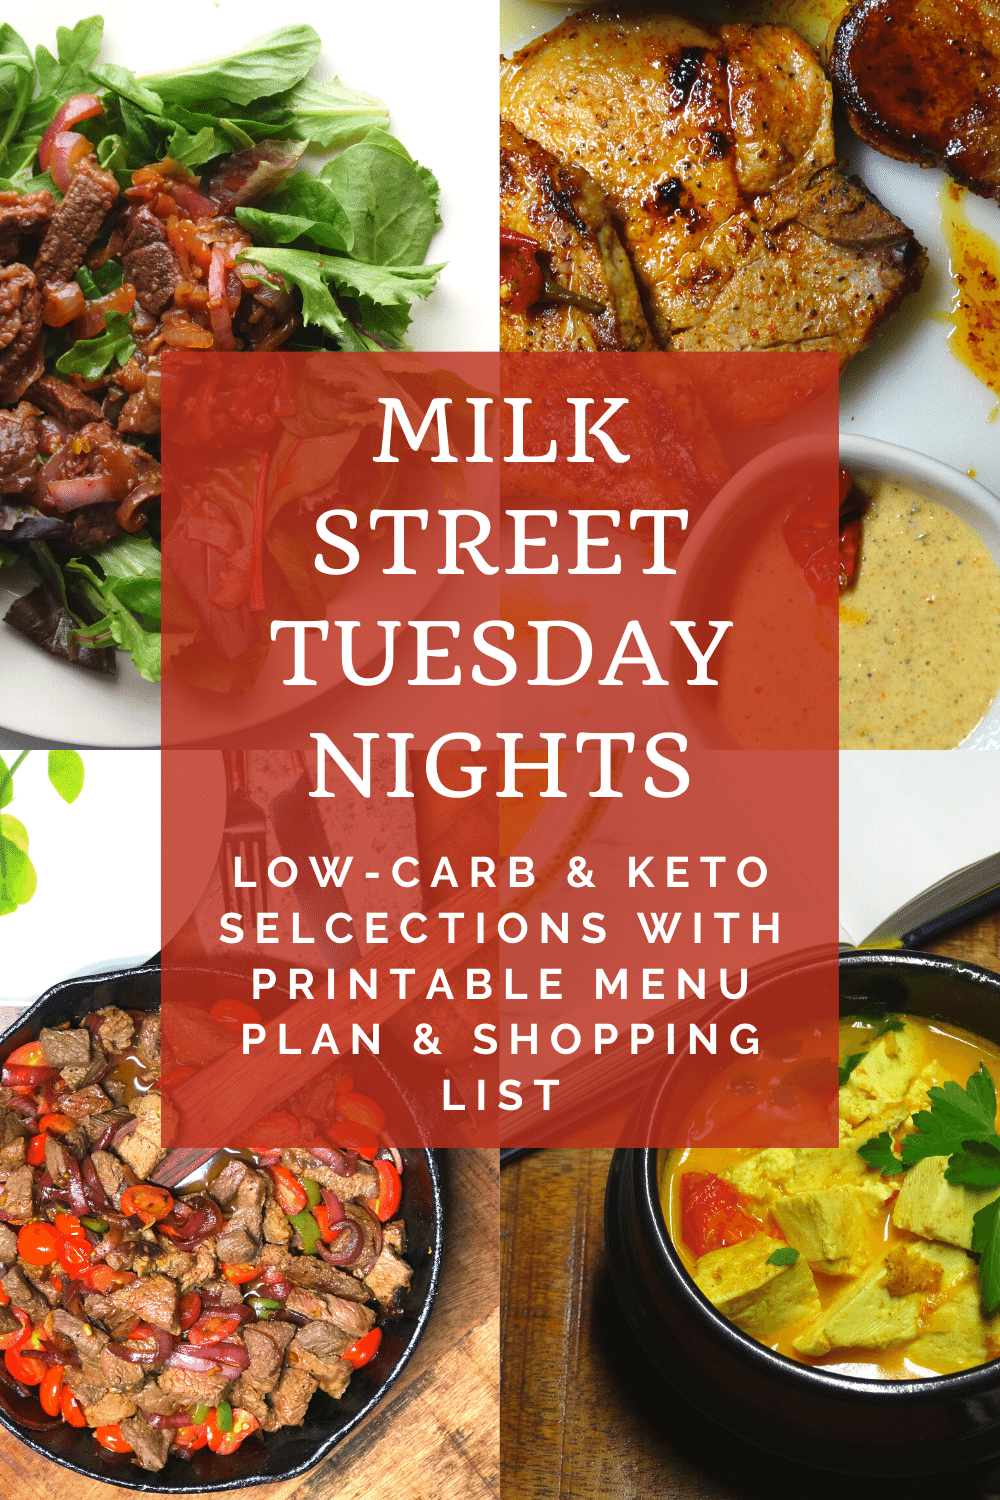 Milk Street Tuesday Nights Low-Carb or Keto Selections Menu Plan & Shopping List